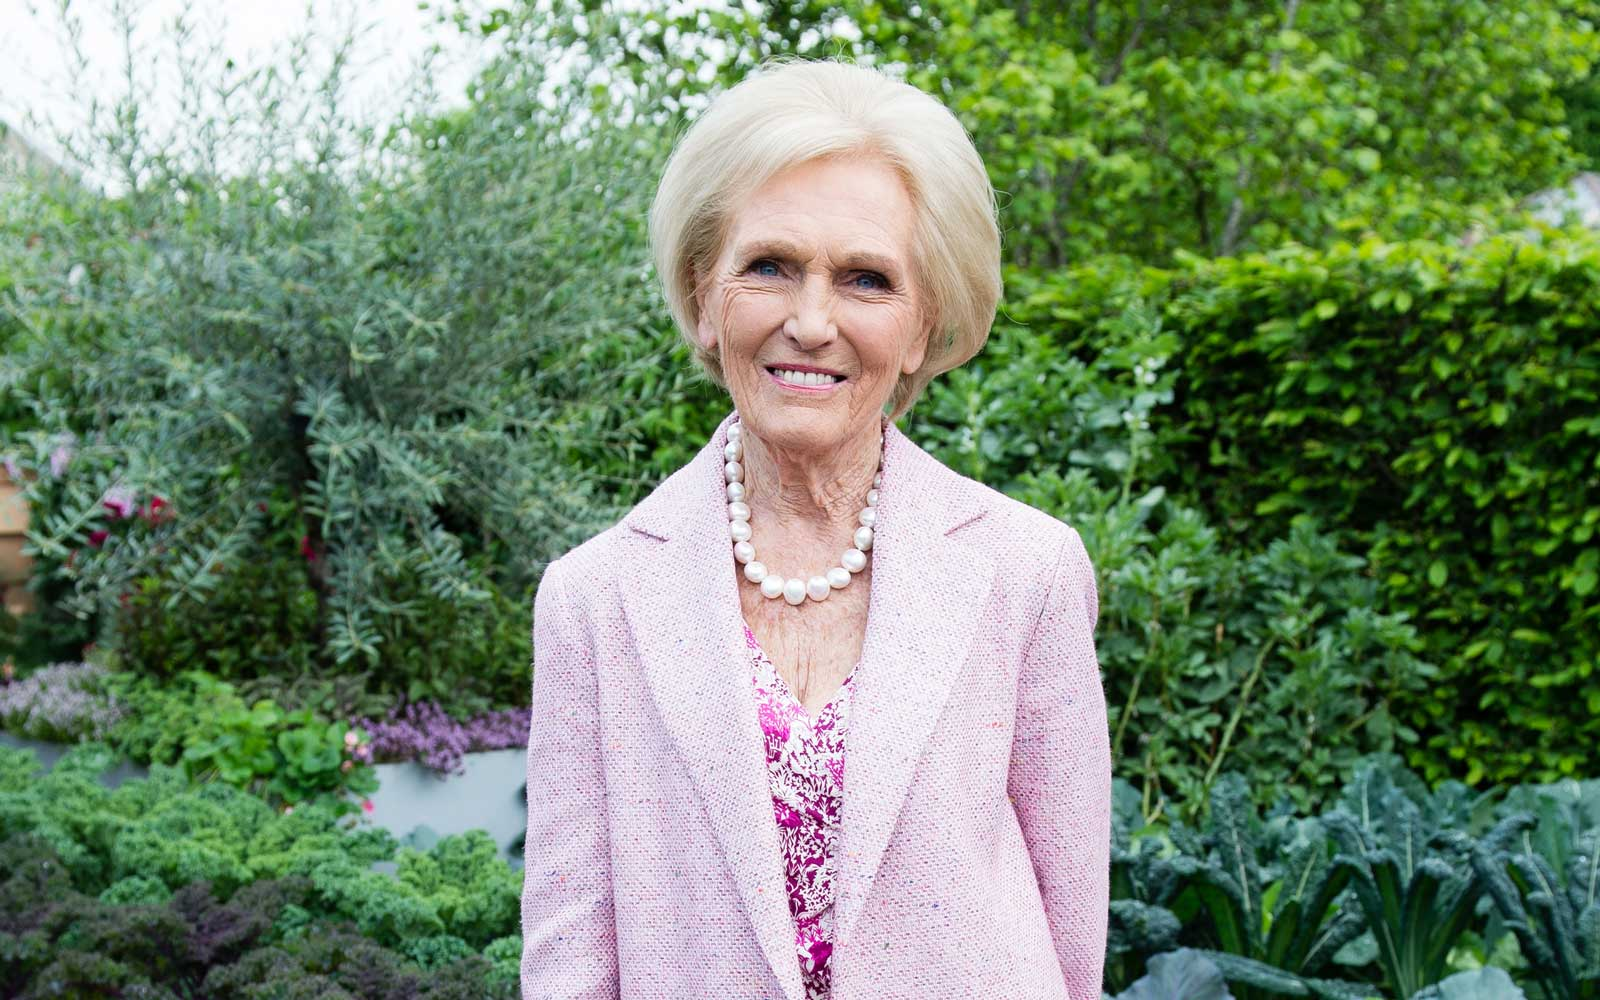 Mary Berry of Bake Off